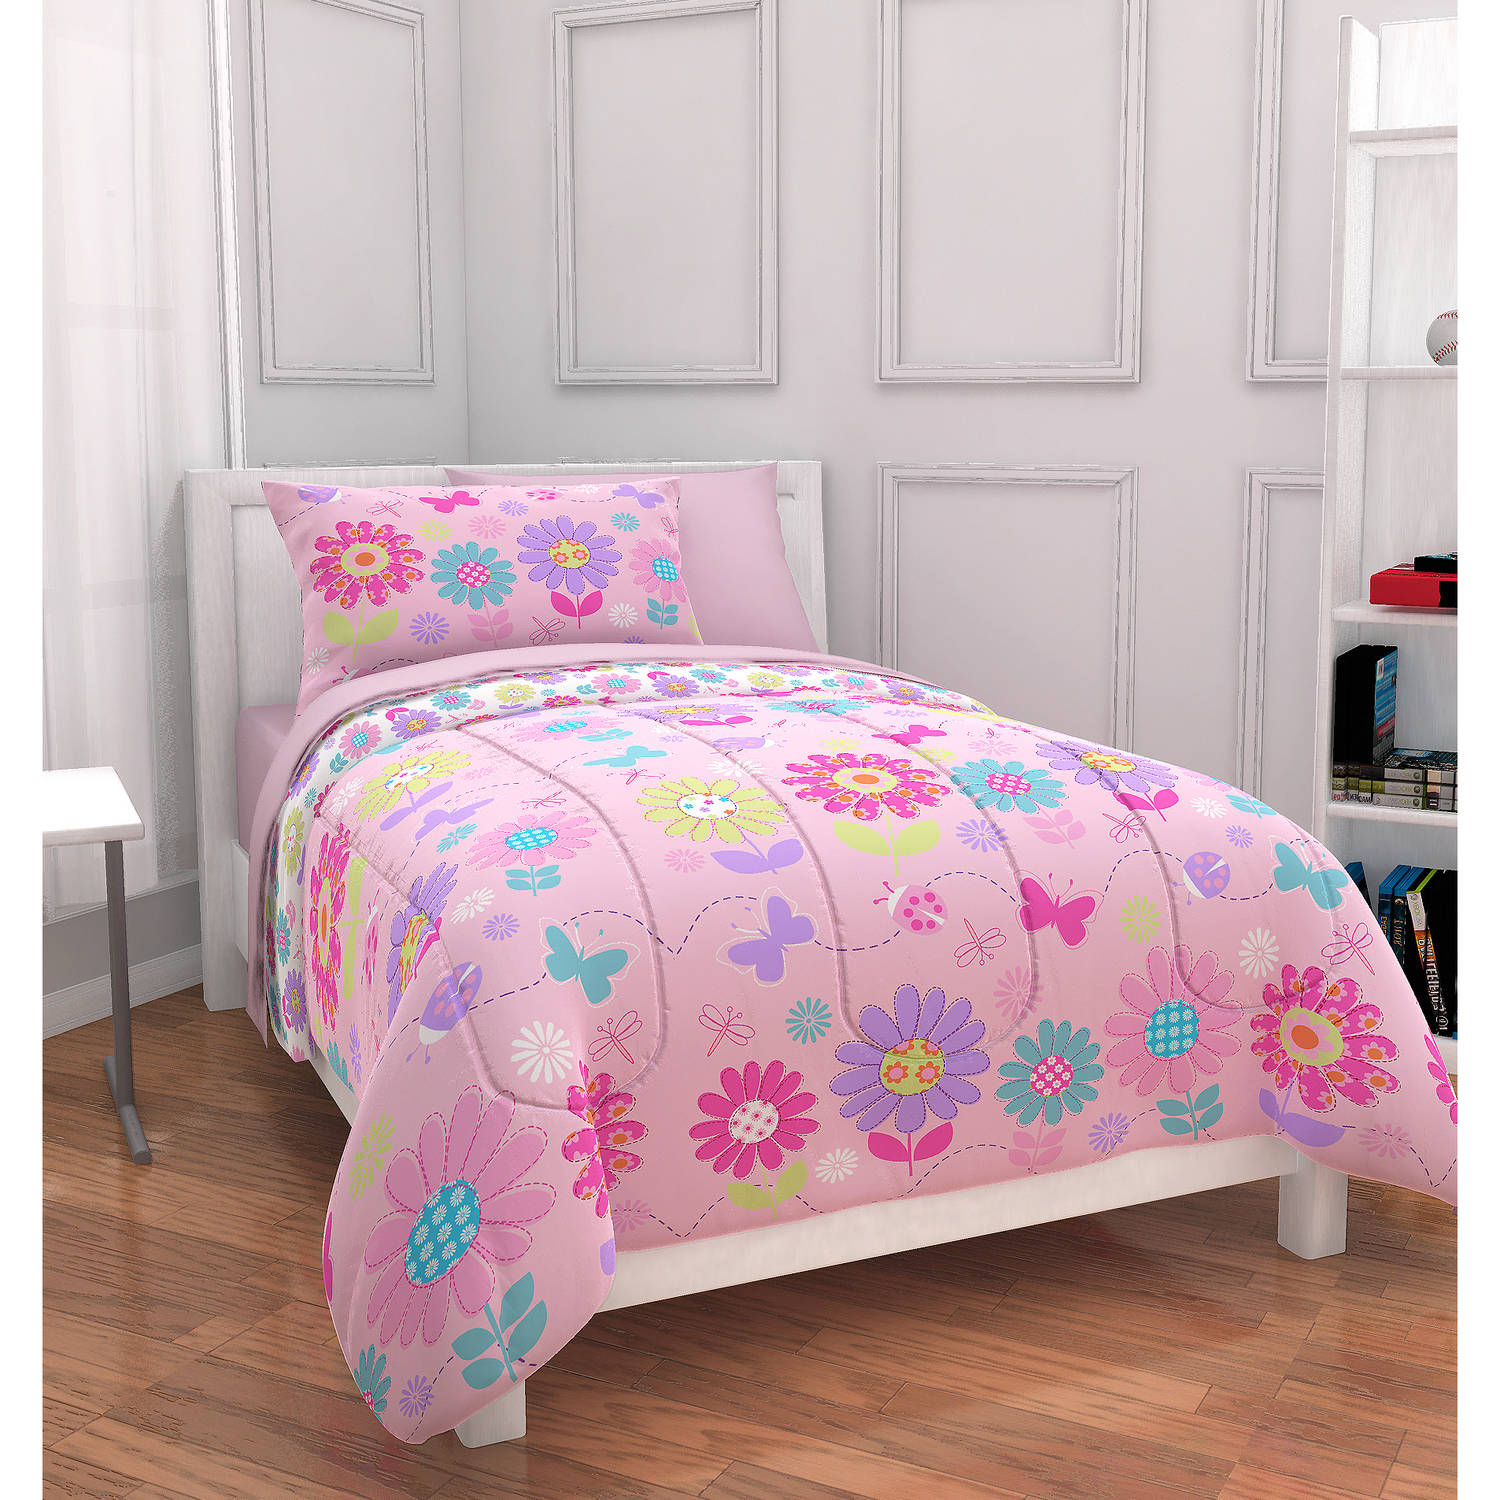 Mainstays Kids Daisy Floral Bed in a Bag Bedding Set